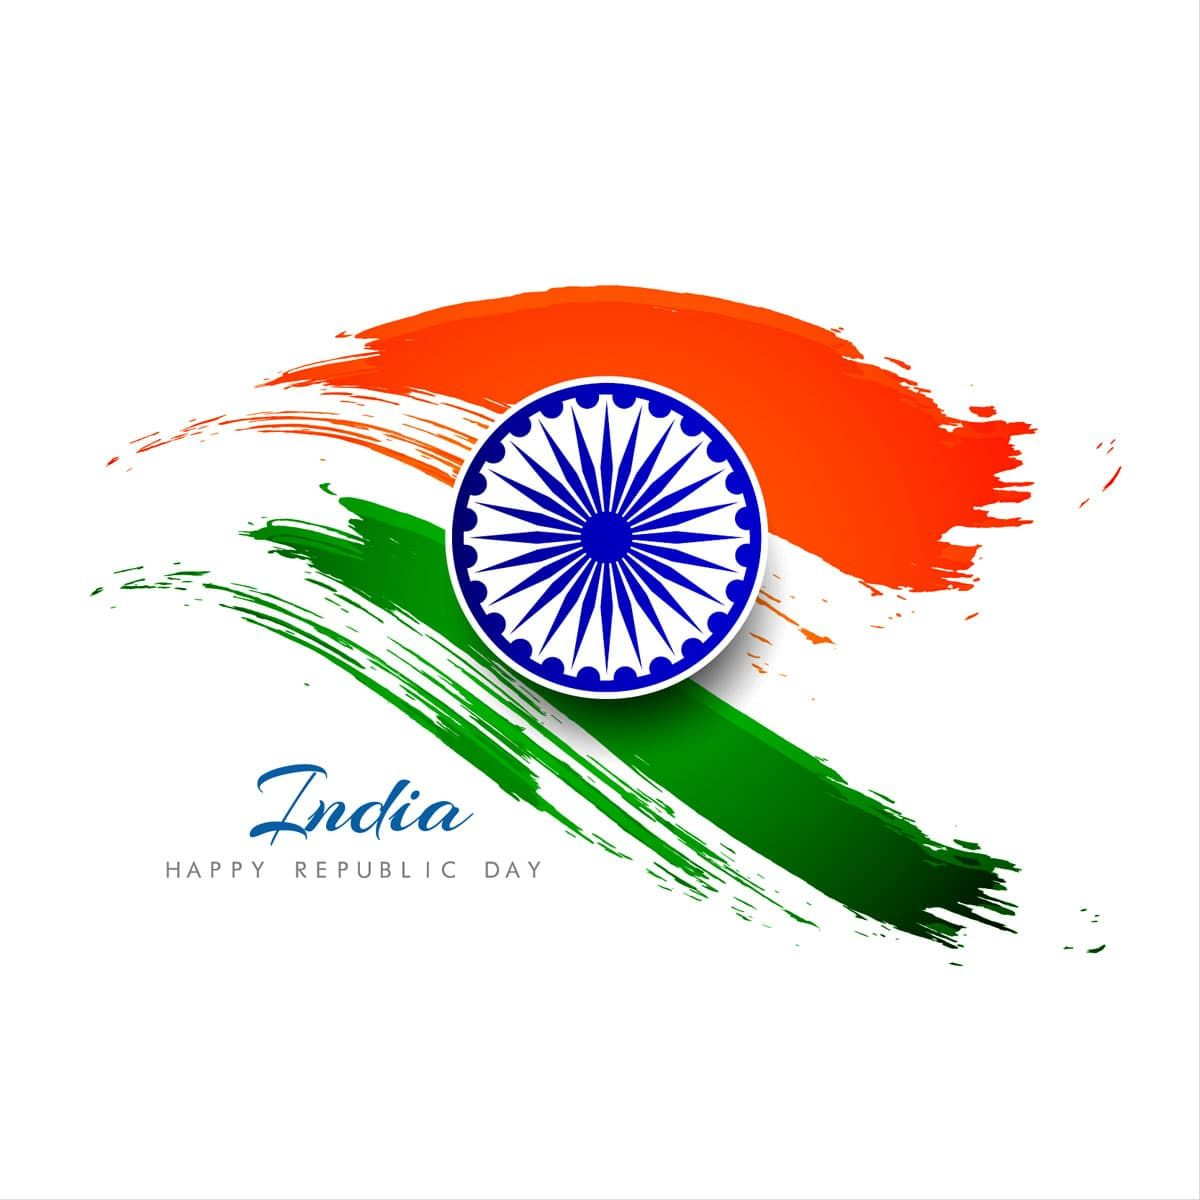 indian flag images download | indian flag | pinterest | indian flag